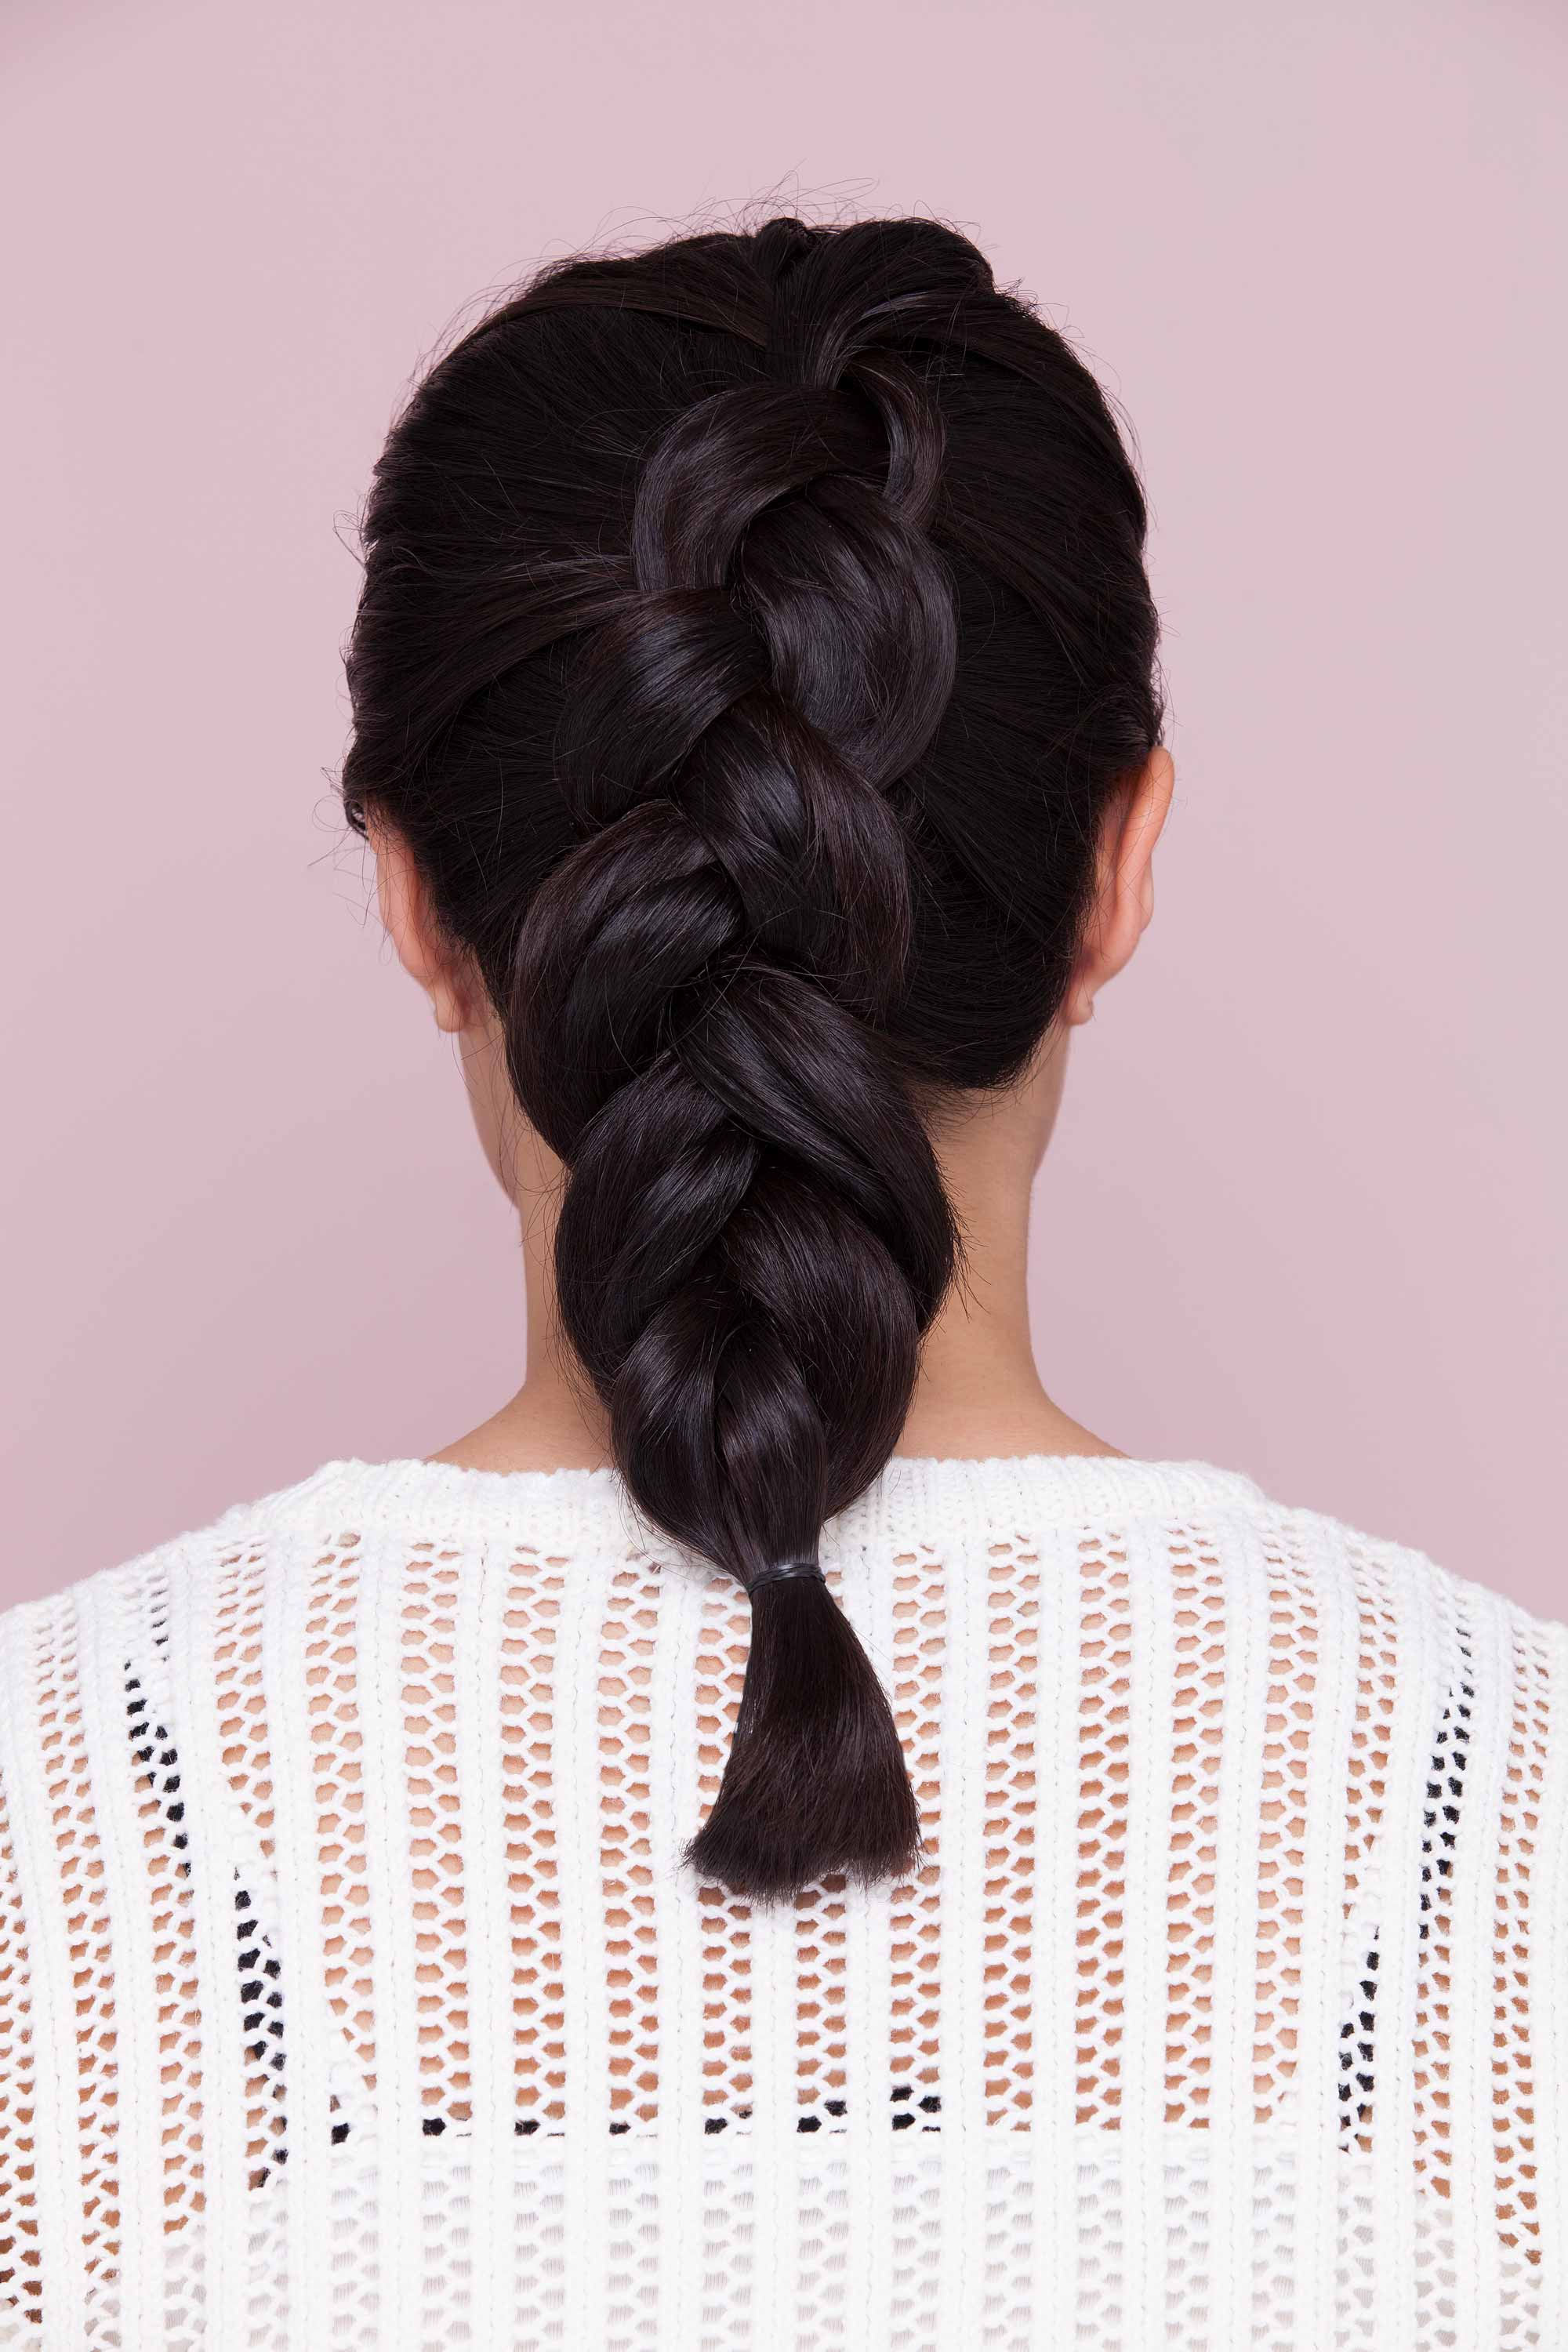 french braid hairstyles to wear over the weekend the dutch braid